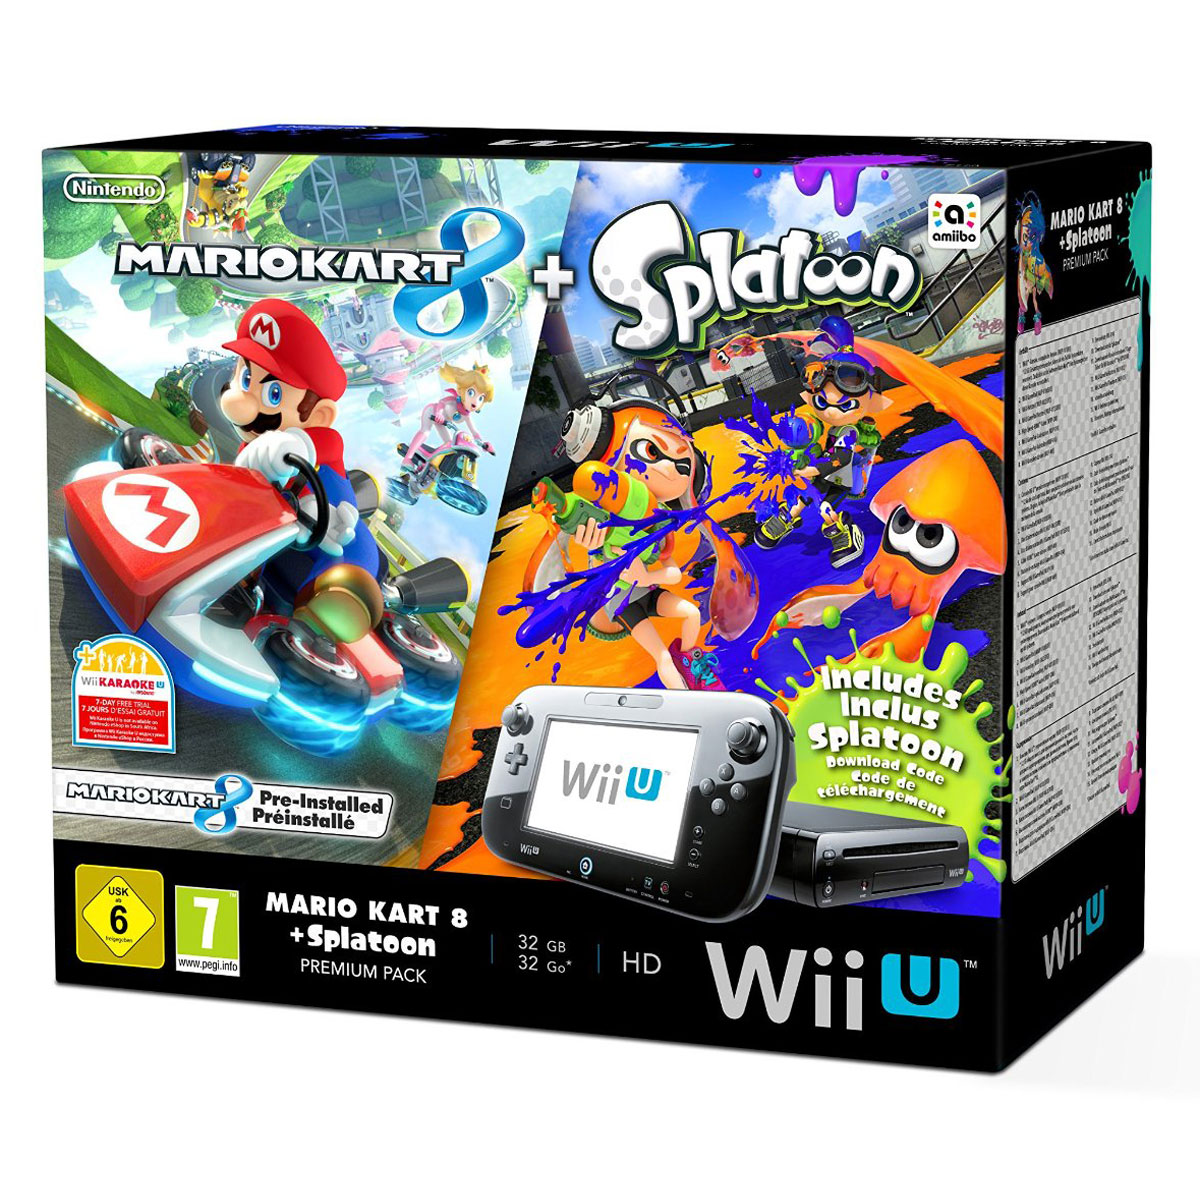 nintendo wii u 32 go premium pack mario kart 8 splatoon nintendo sur. Black Bedroom Furniture Sets. Home Design Ideas